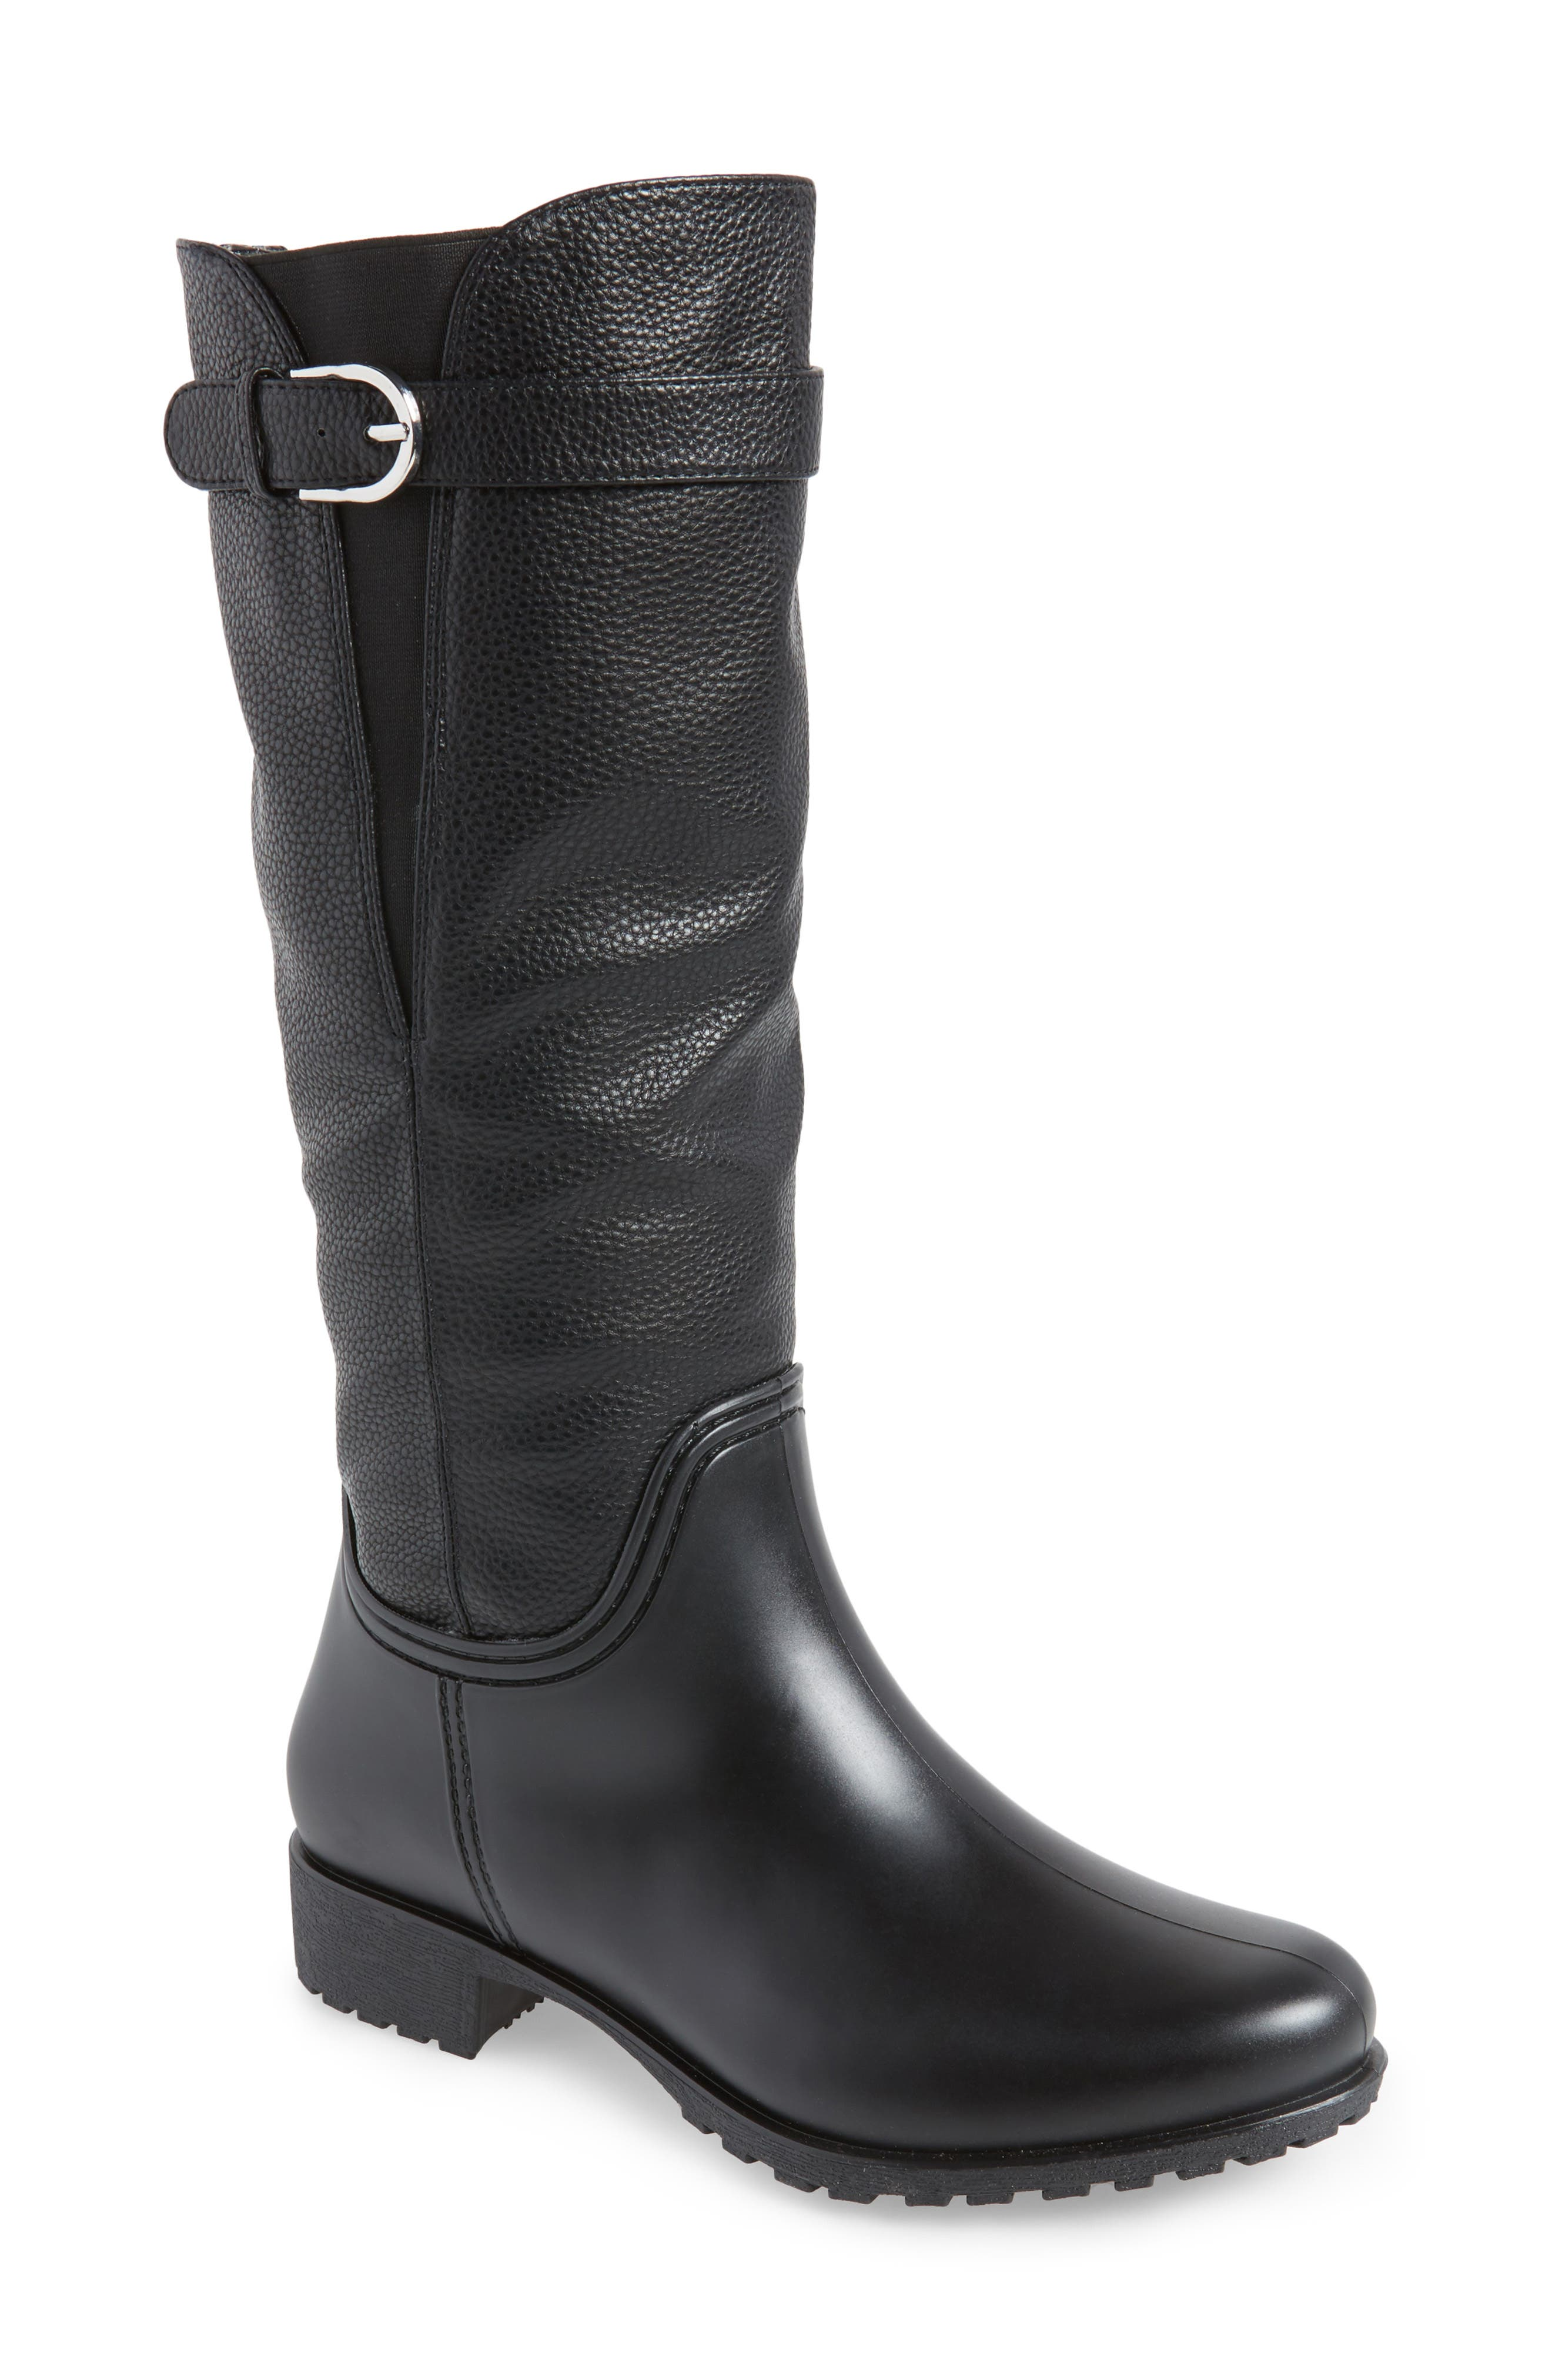 DÄV Dunkirk Water Resistant Boot, Main, color, BLACK